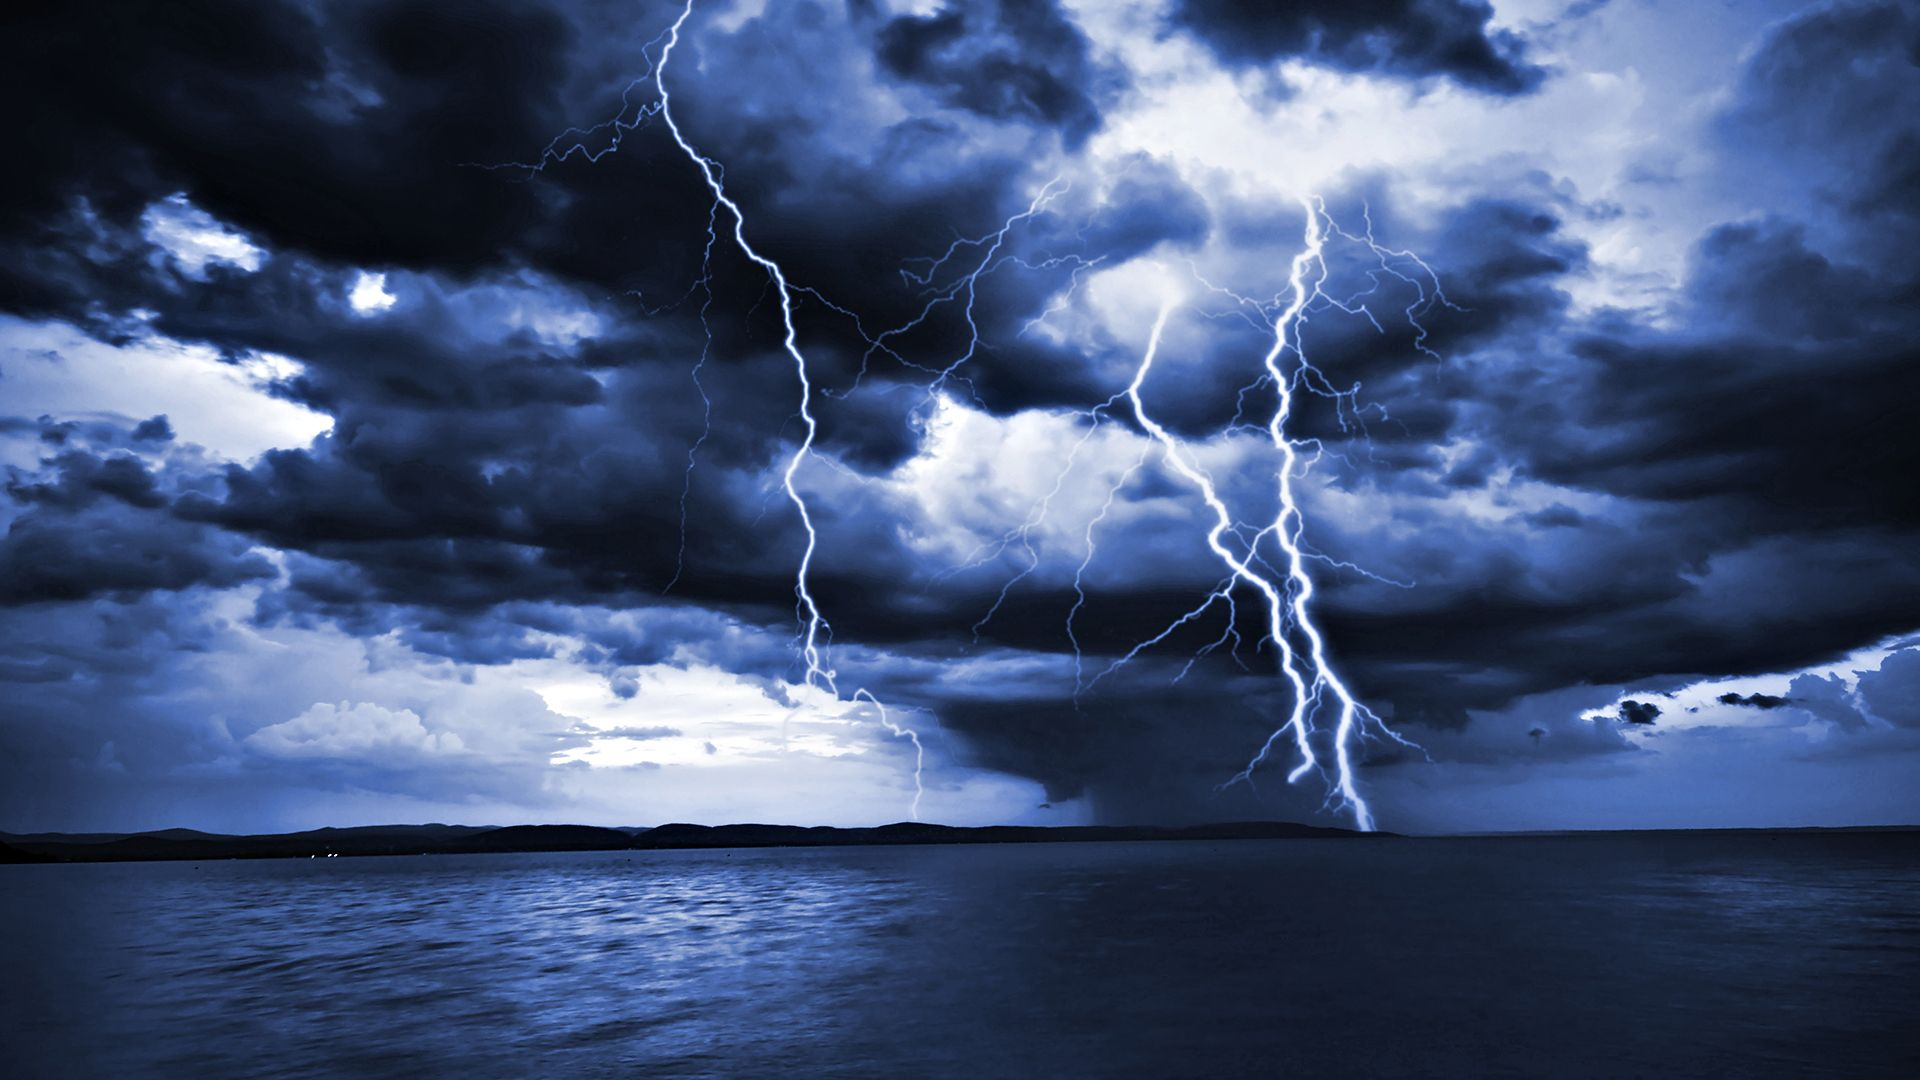 Lightning Storm at Sea | Massive thick lightning bolts hit the ...